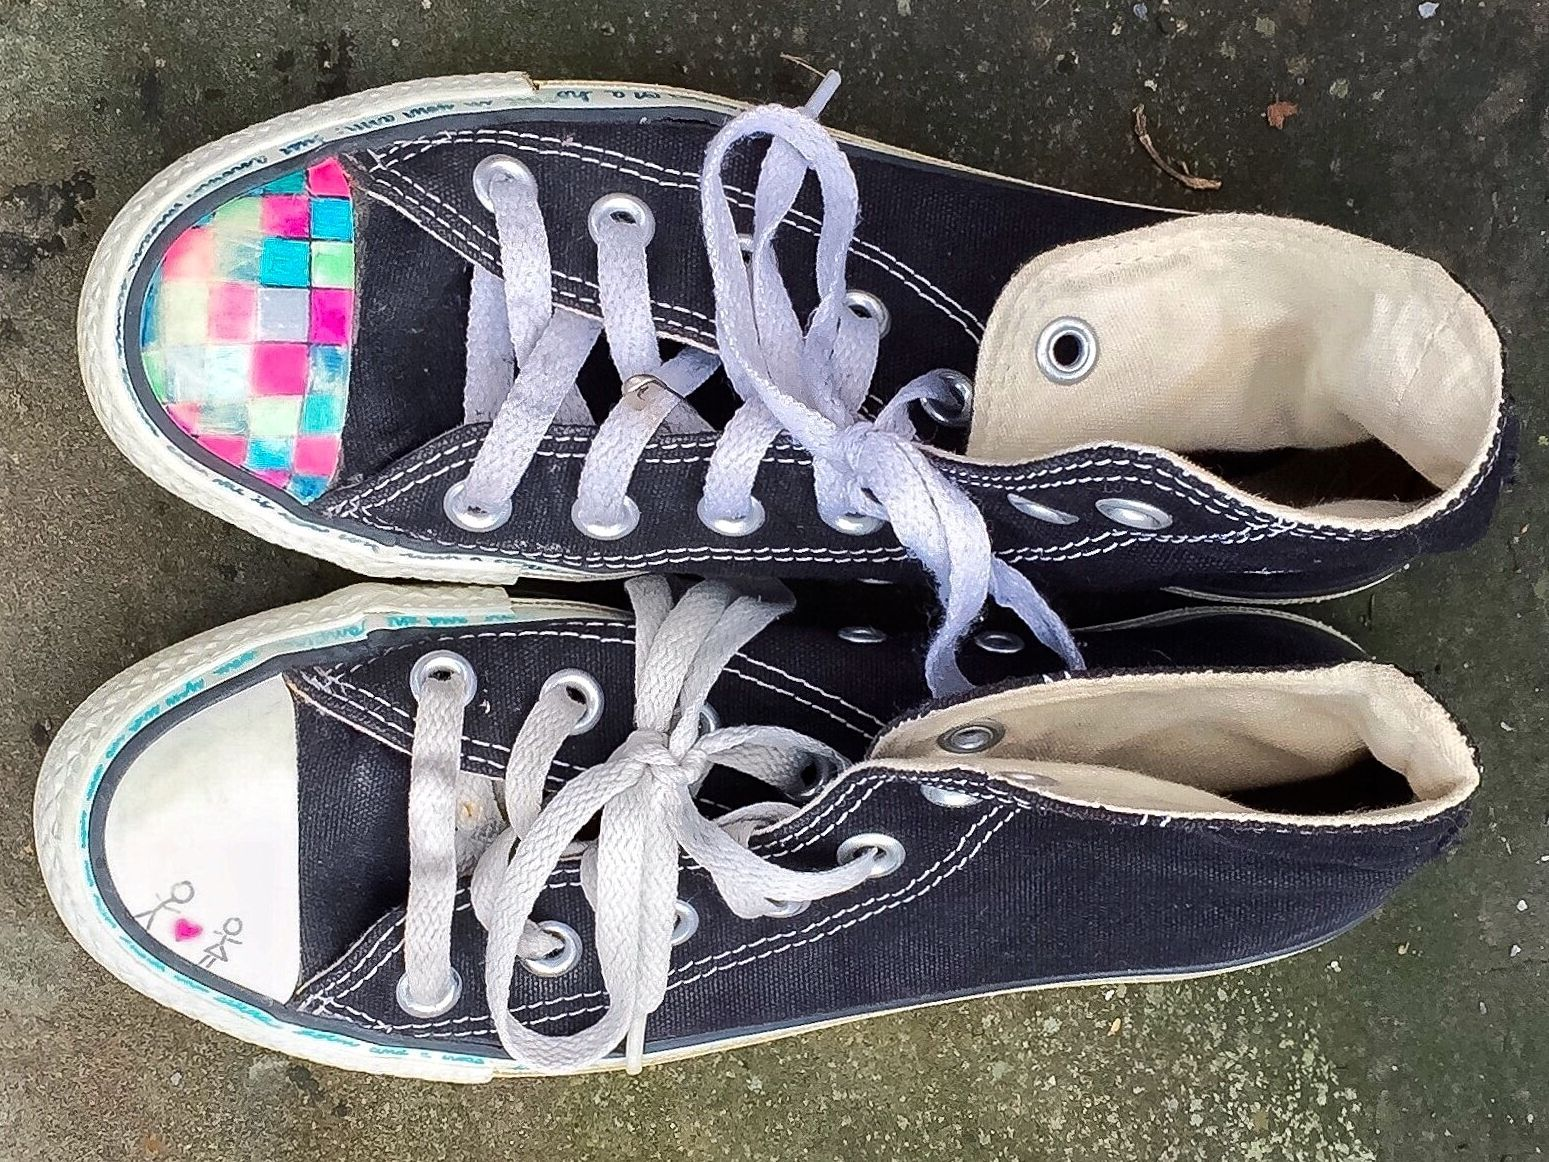 37 Emo Song Lyrics You Doodled On Your Chuck Taylors - MTV